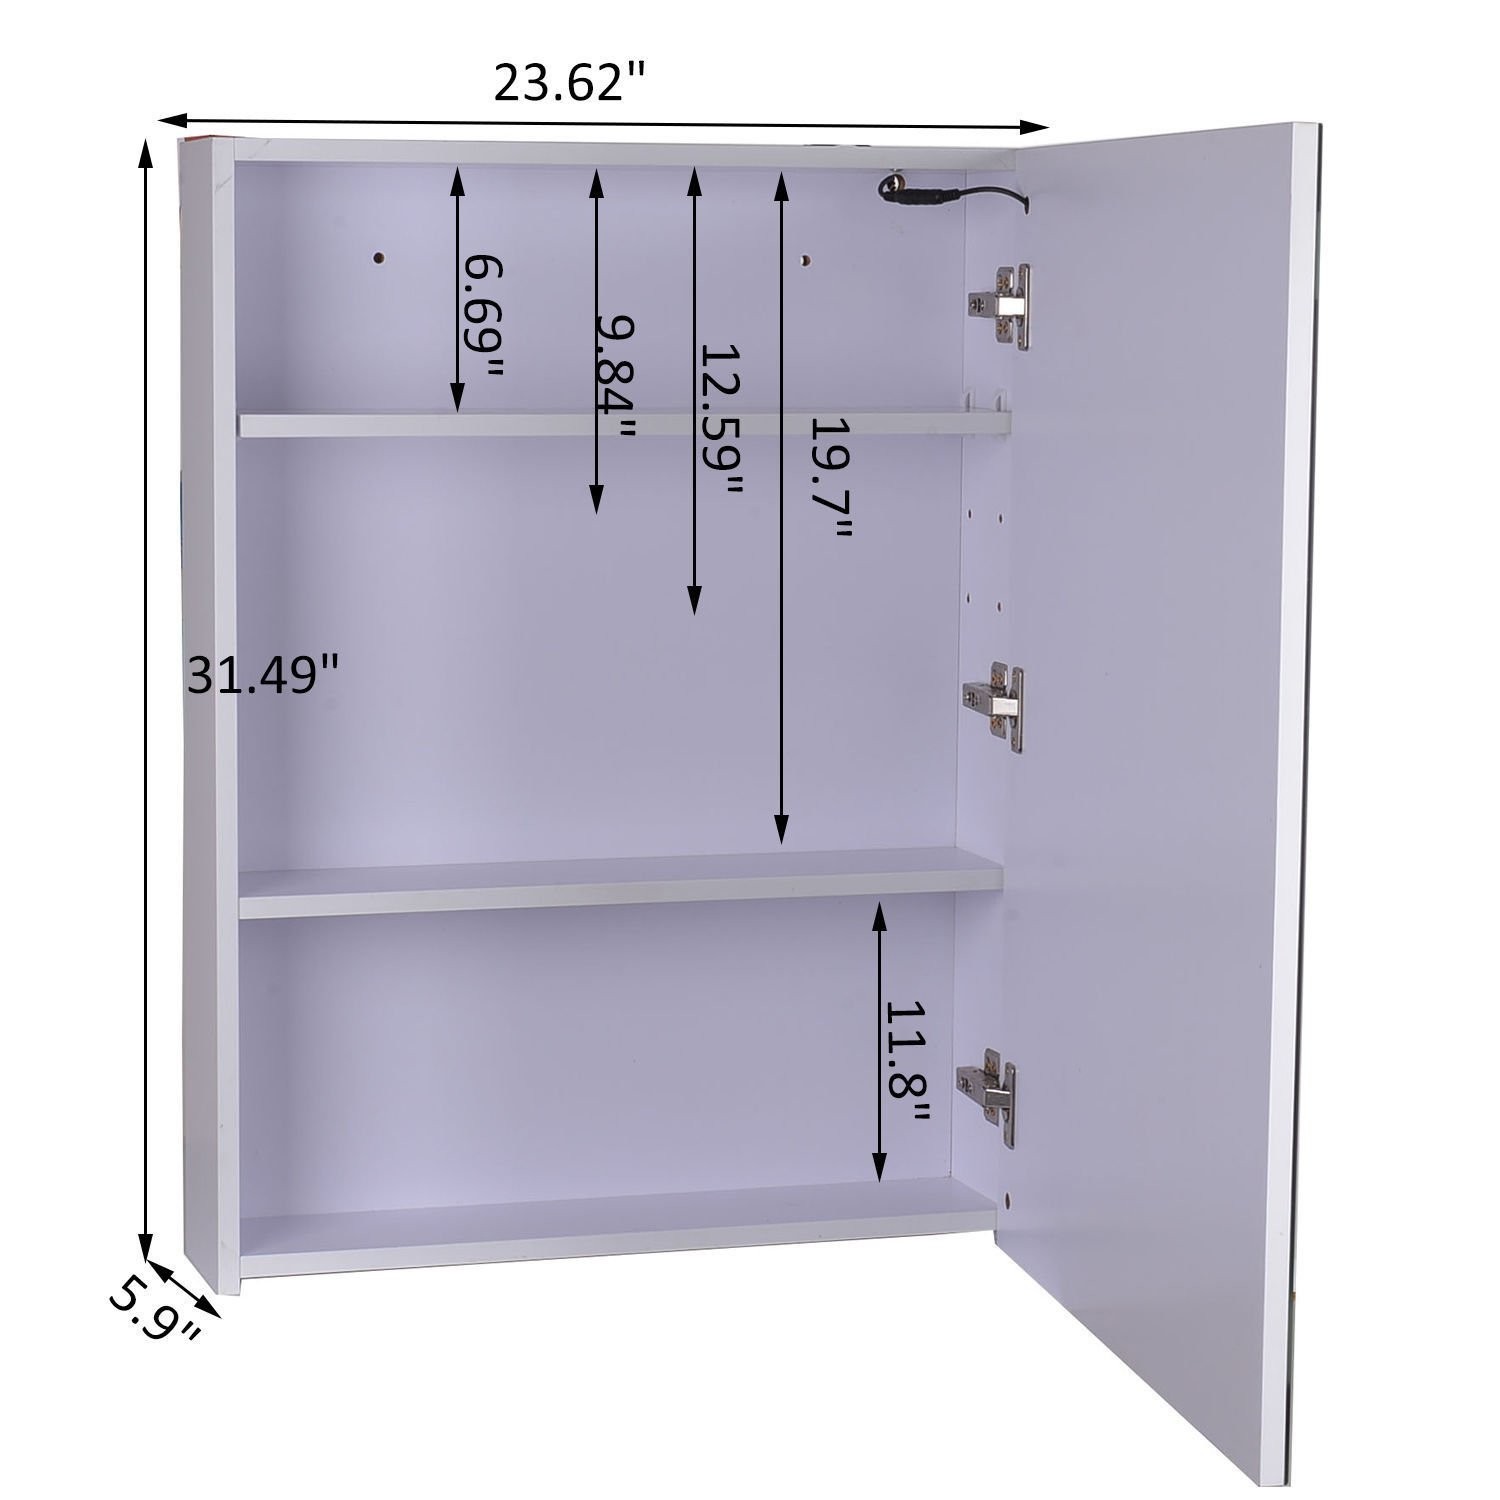 LED Wall Cabinet Mirror Wall Mounted Bathroom Medicine Cabinet w/ 3 Compartments With Ebook